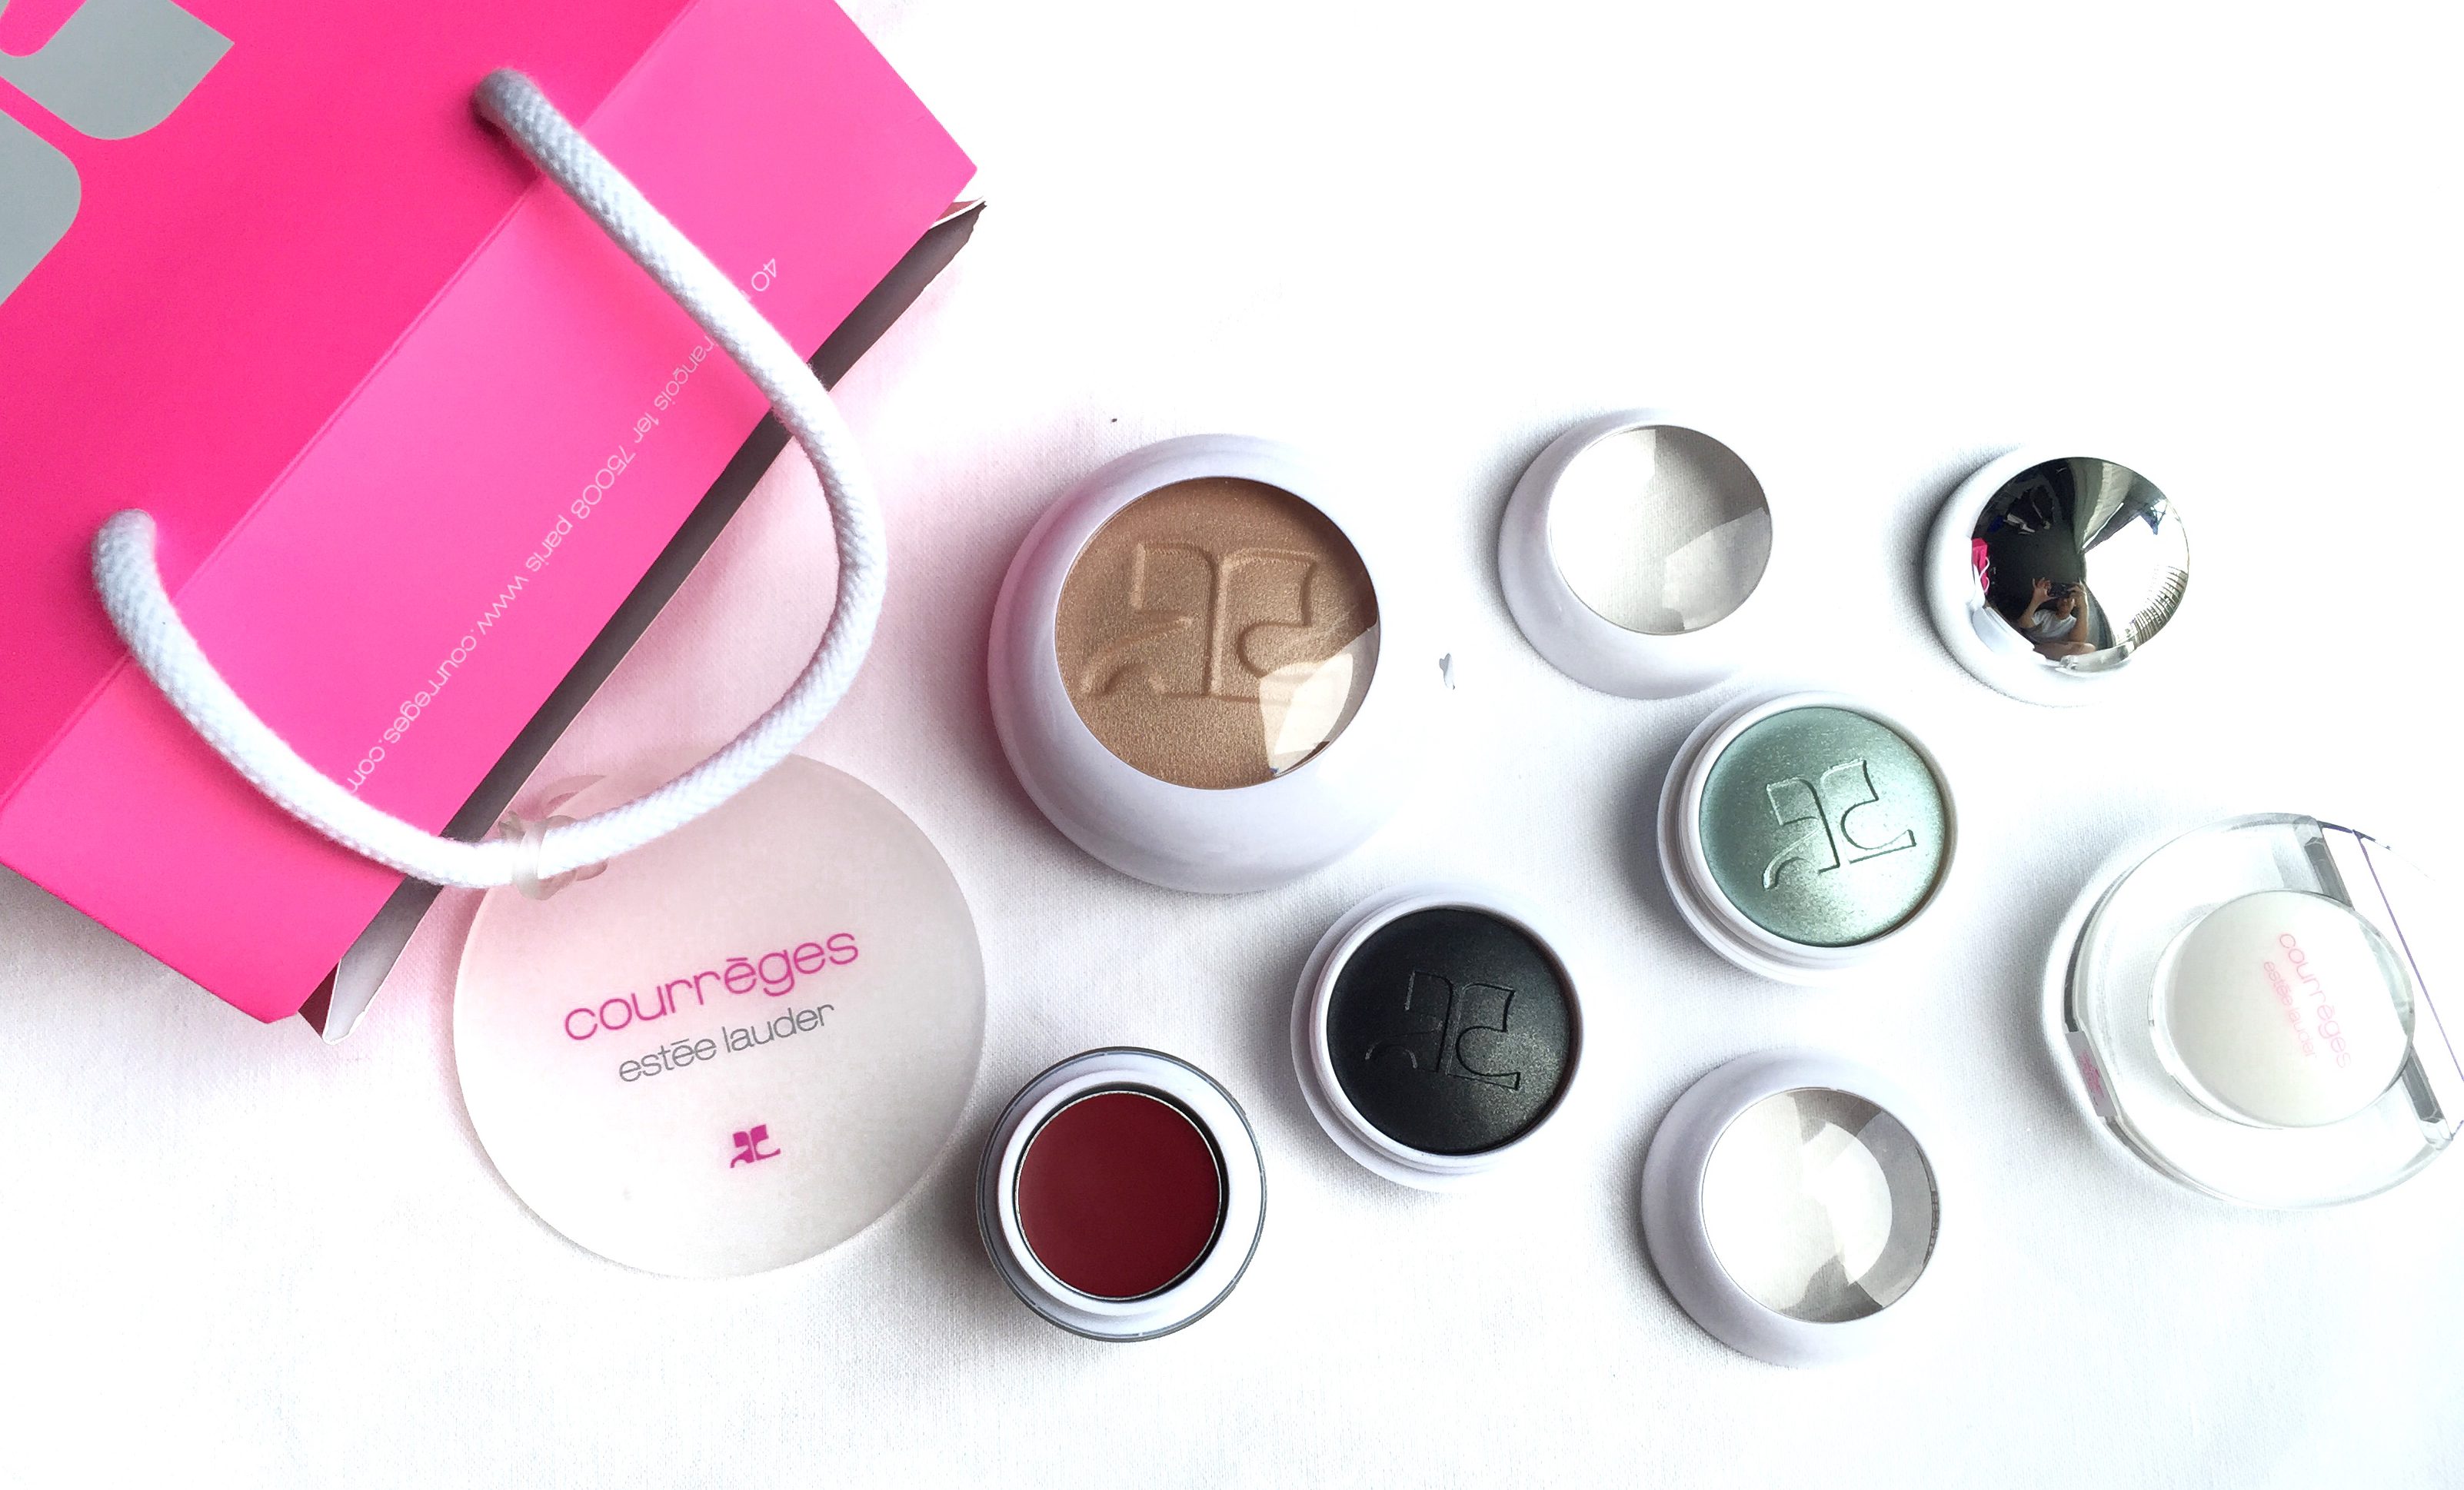 To acquire Lauder estee courreges spring makeup collection picture trends